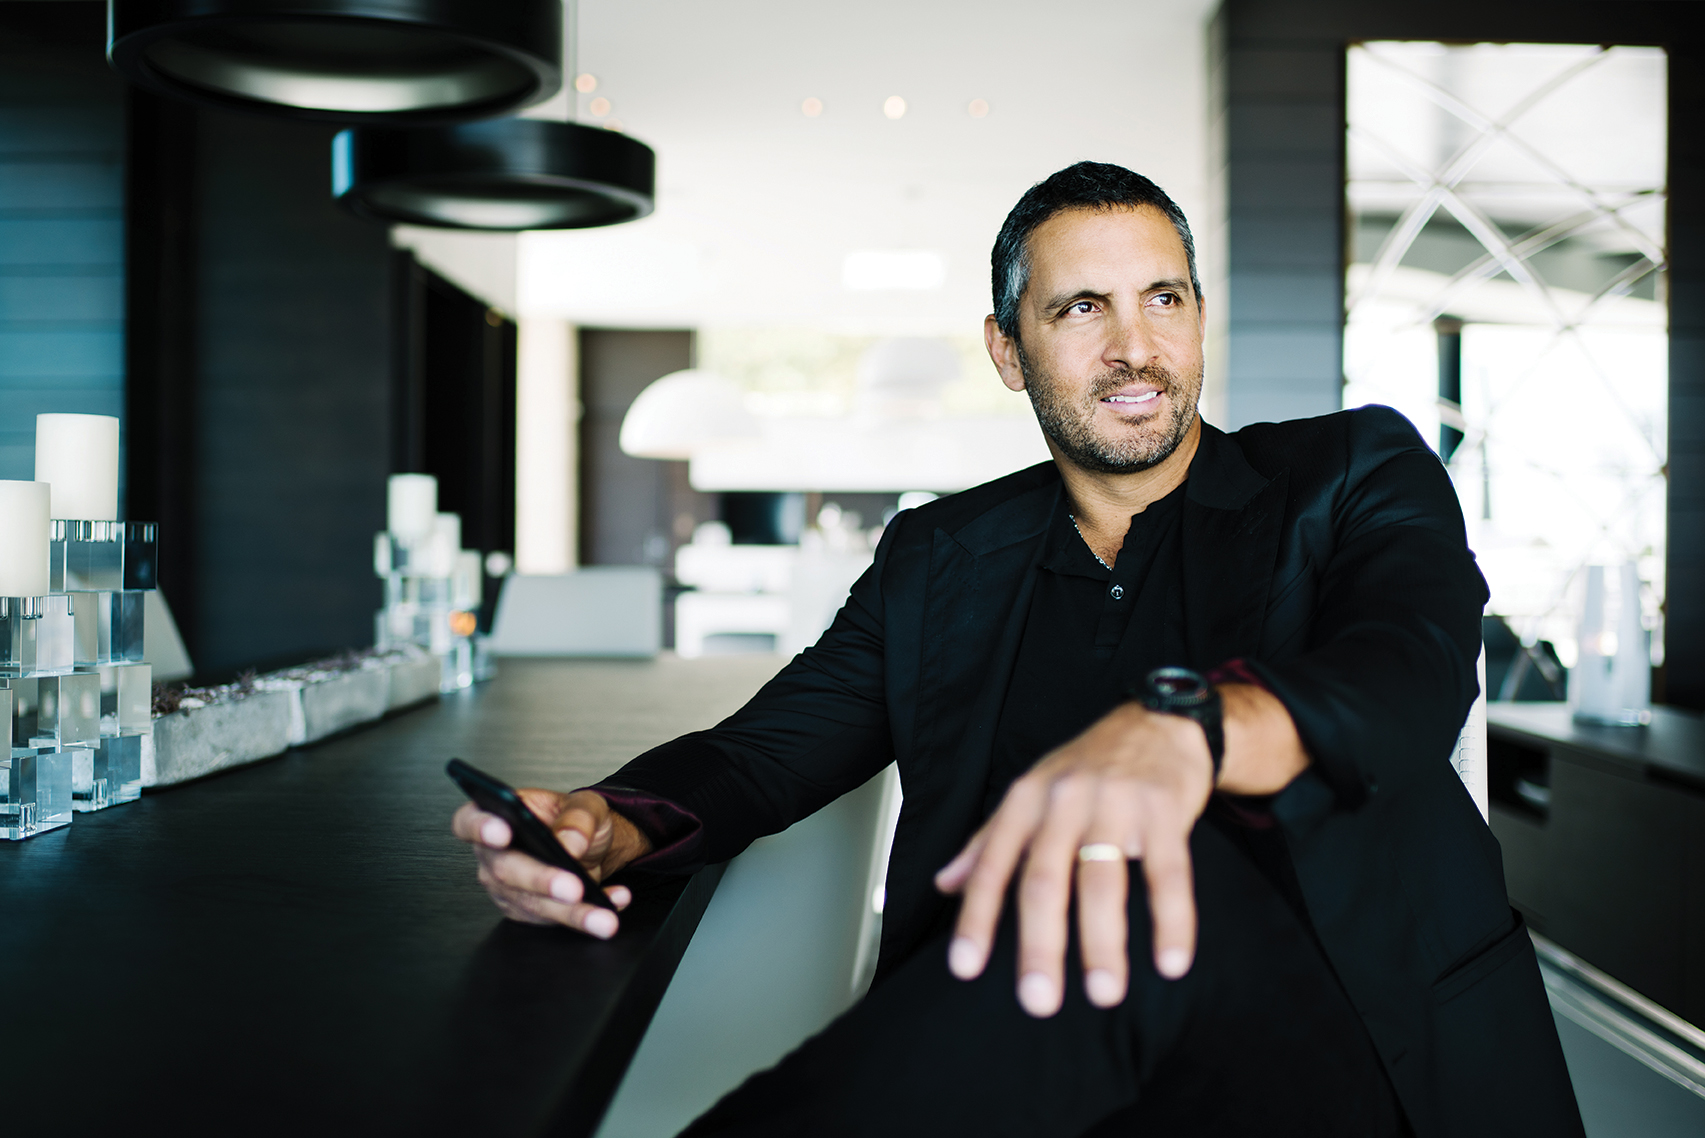 Mauricio Umansky looks breathtaking in his black suit. He is sitting in a well-furnished room.